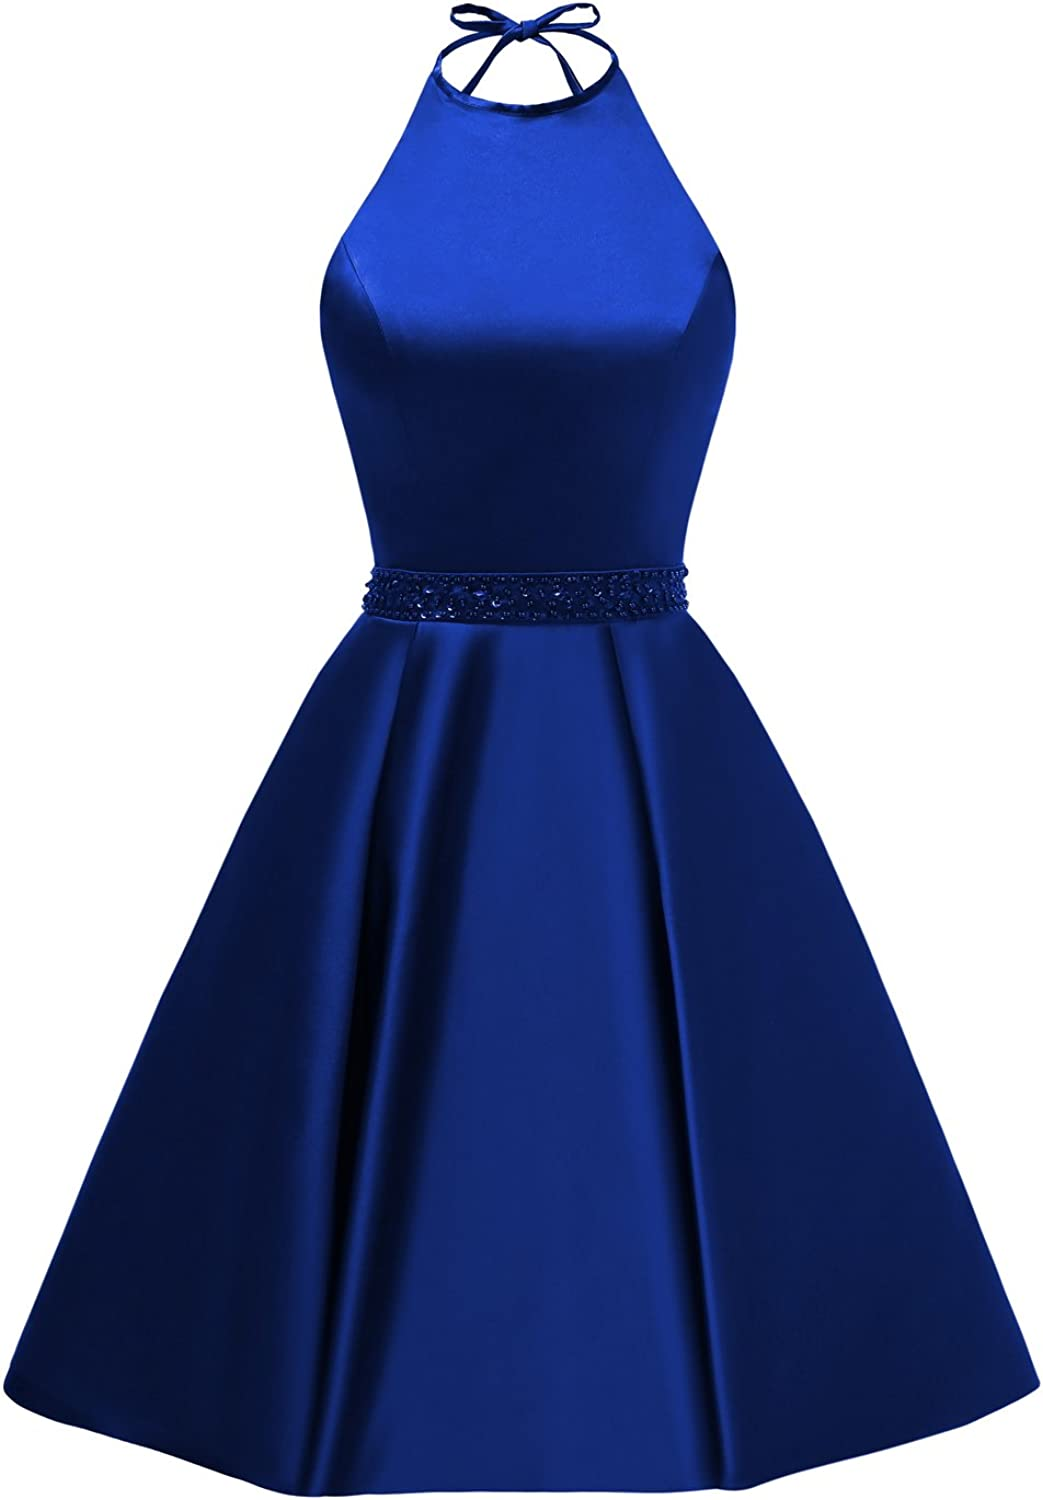 Women's Halter A-line Beaded Satin Homecoming Dress Short Evening Party Gown with Pockets